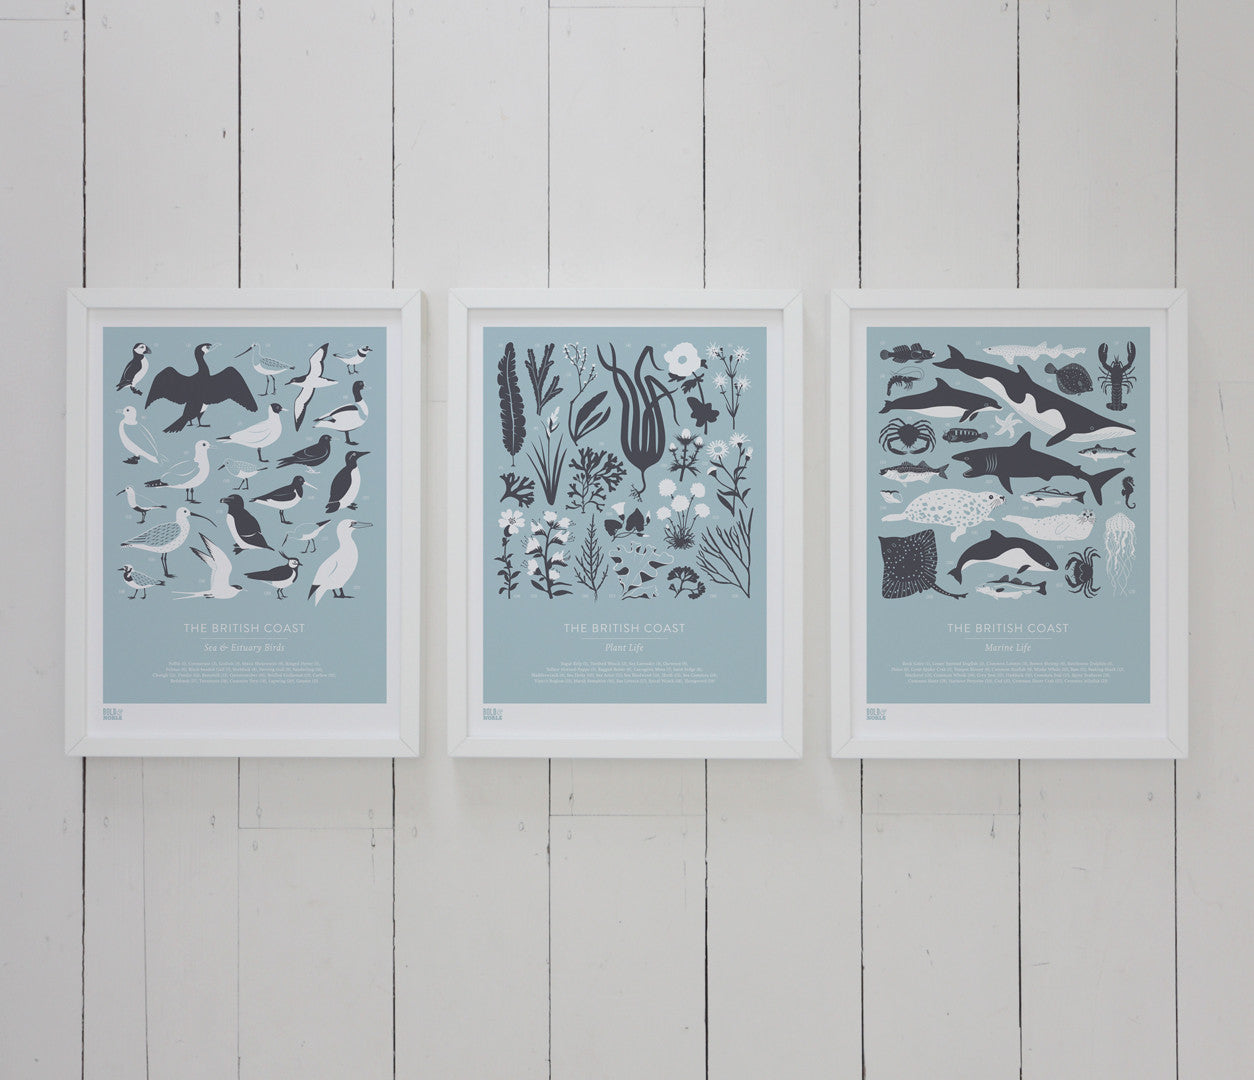 Wall art ideas, economical screen prints, Set of 3 British Coast Birds, Plants and Marine life in duck egg blue